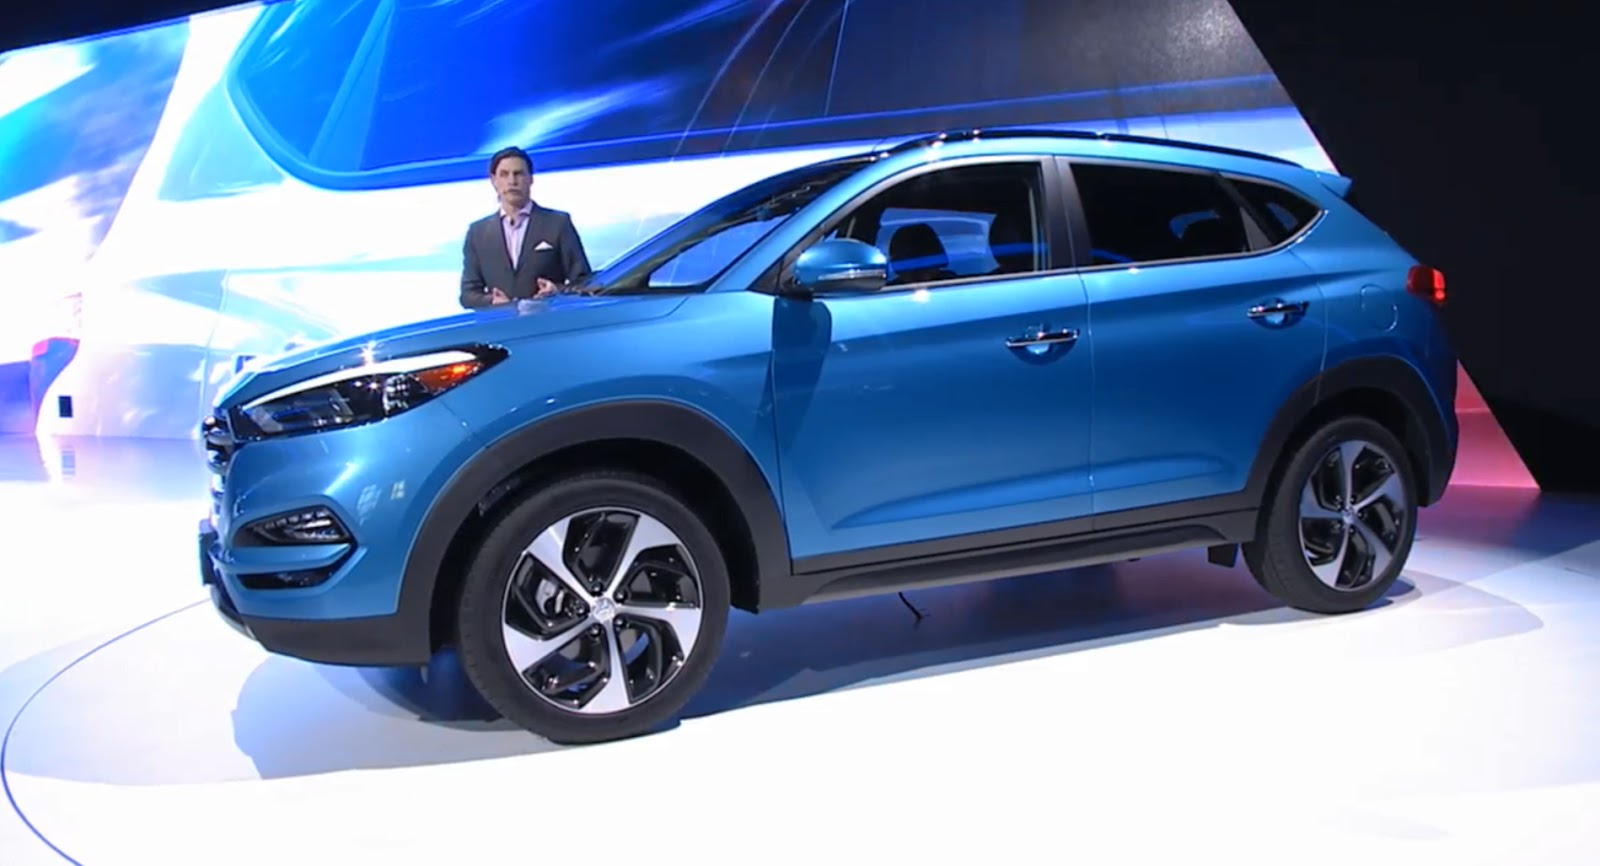 hyundai reveals more handsome 2016 tucson for north america in ny carscoops. Black Bedroom Furniture Sets. Home Design Ideas